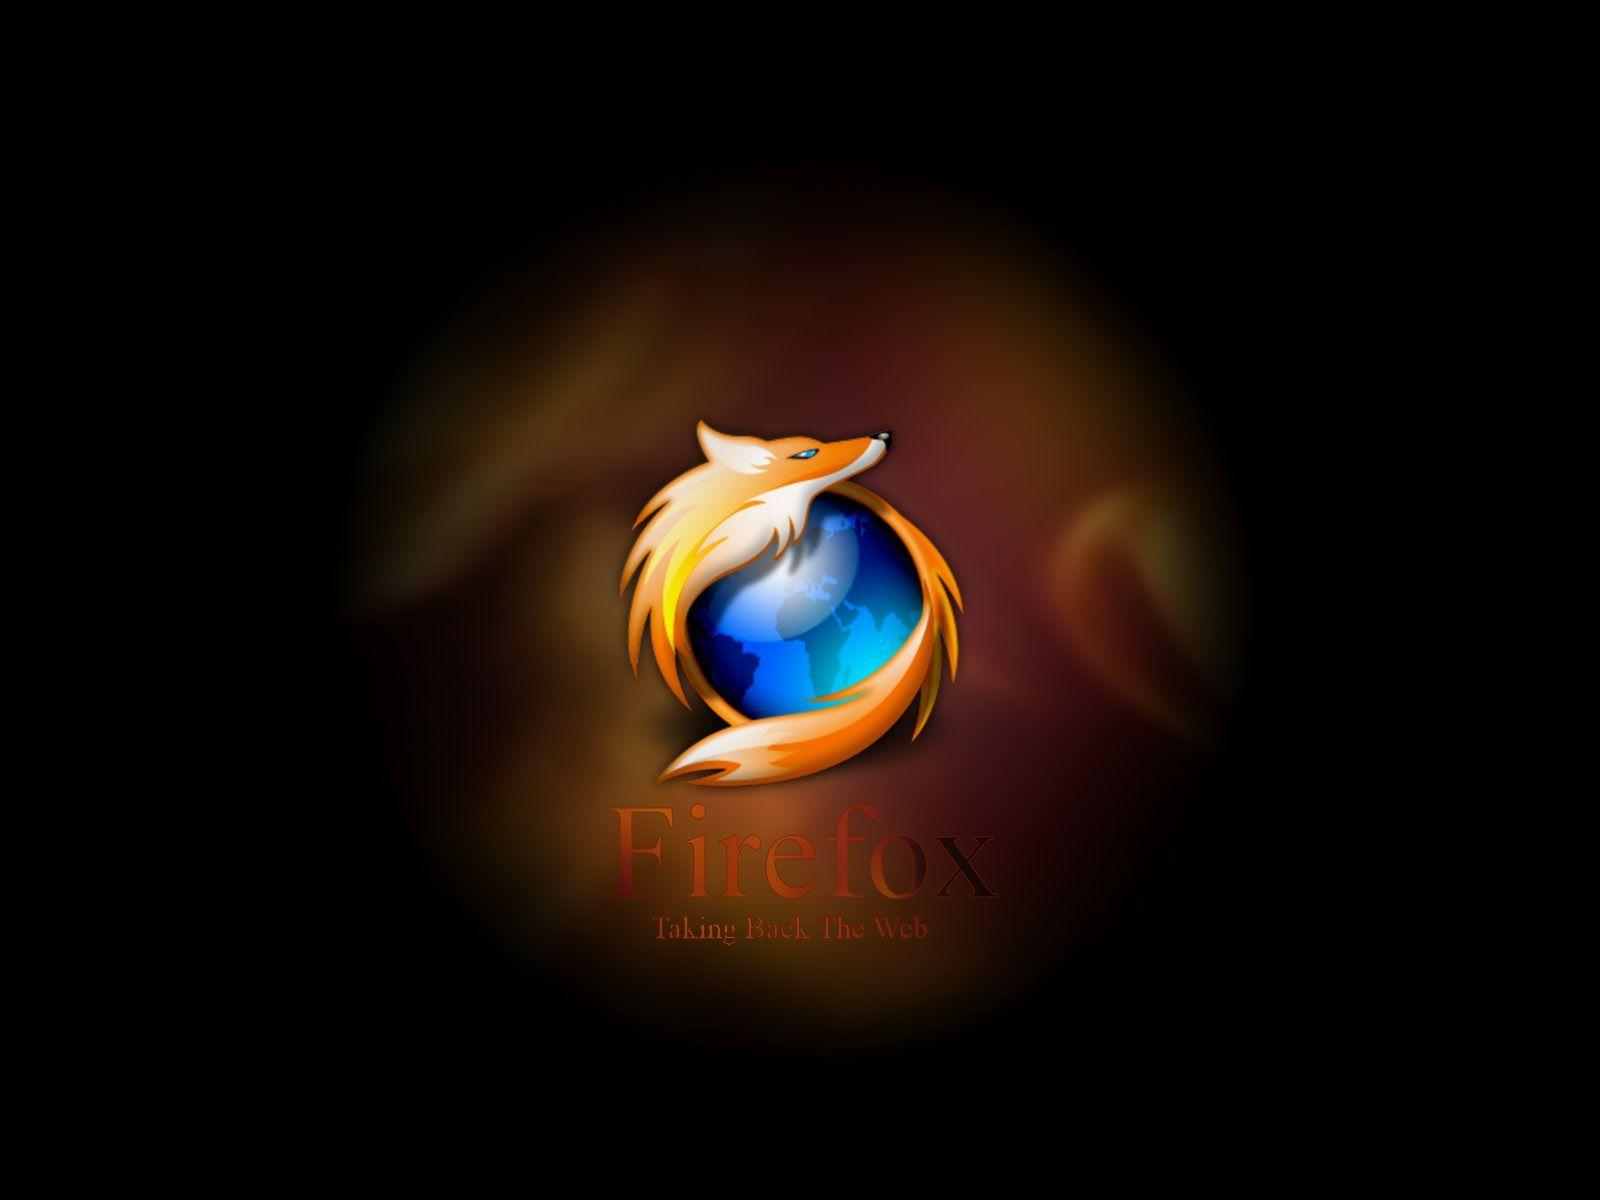 Where can I get the Firefox version 28 install exe file for windows